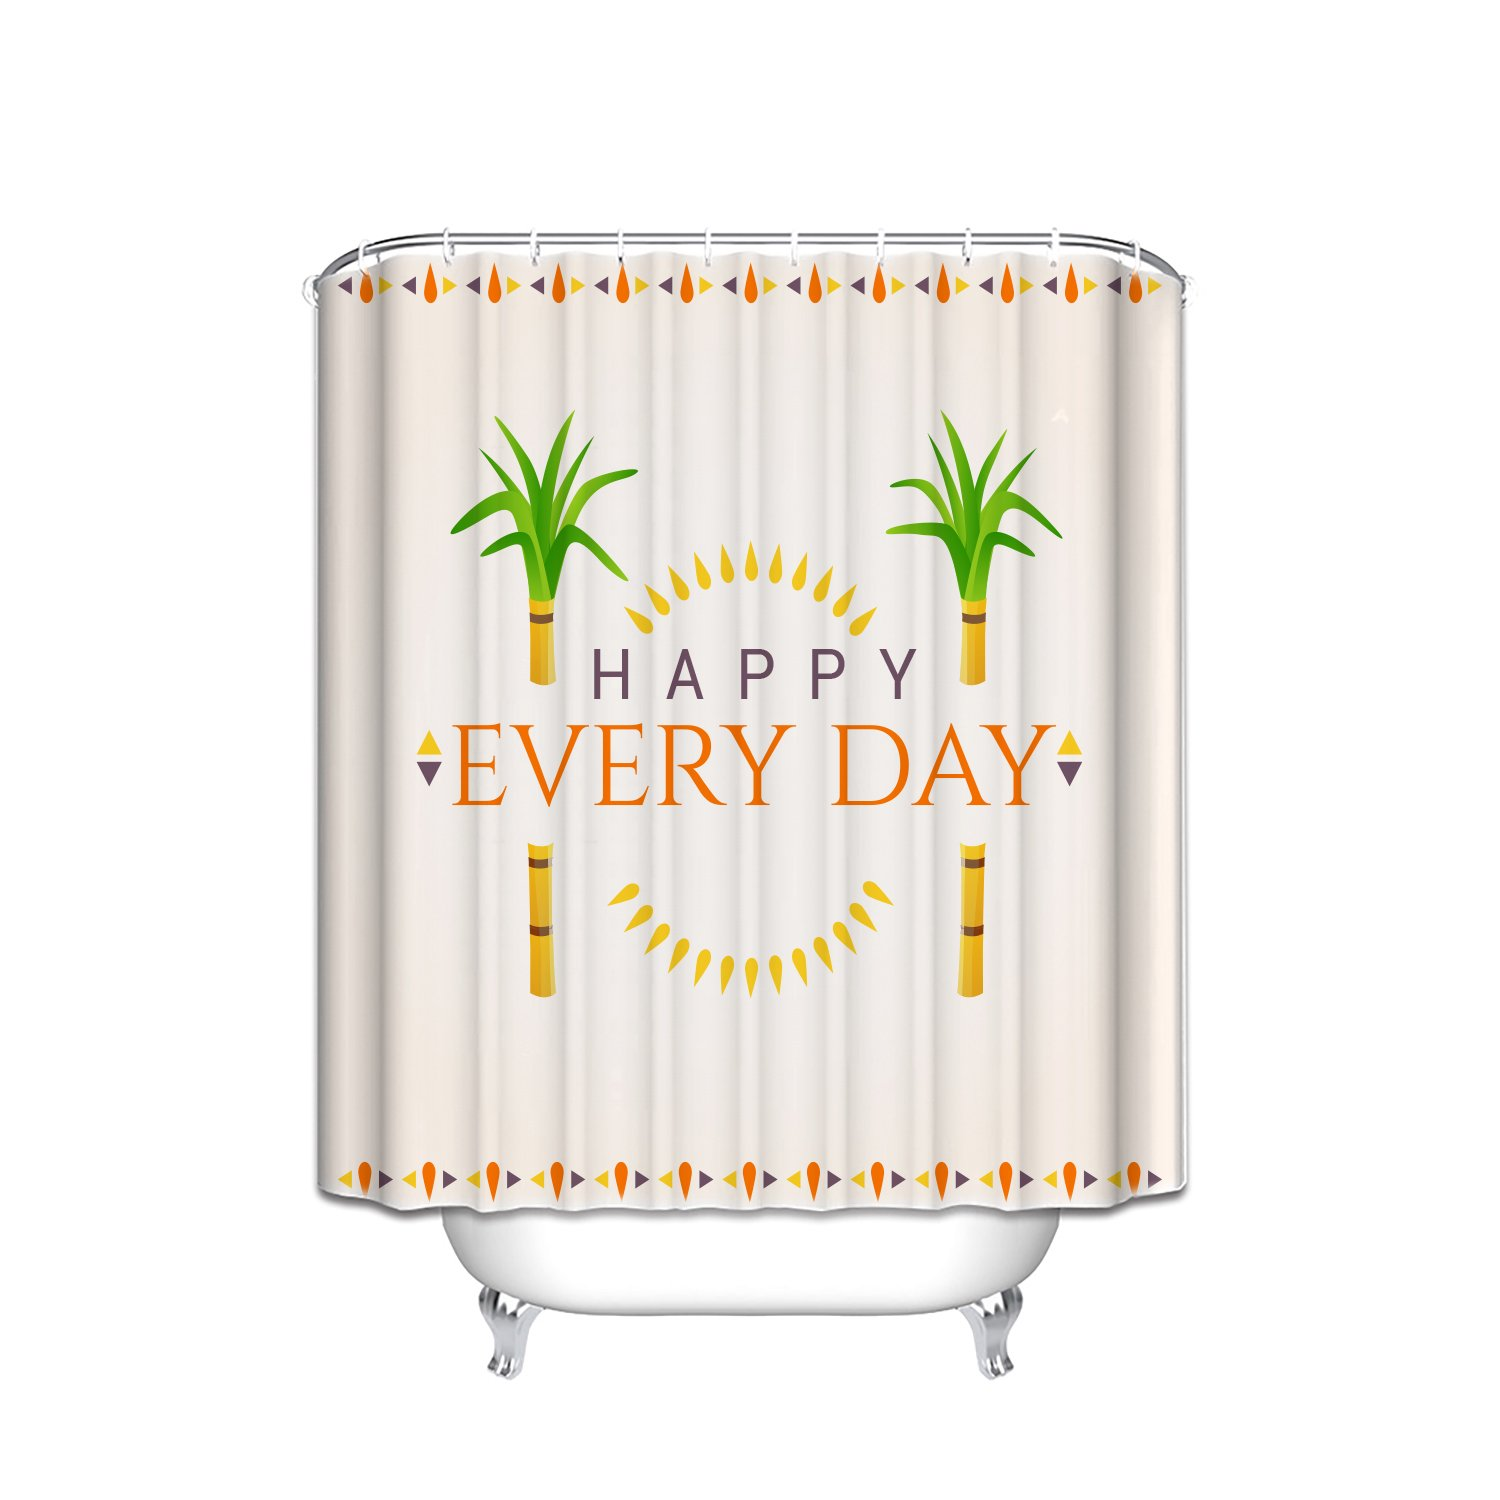 Prime Leader Custom Shower Curtains Happy Every Day Cute Sugar Cane Background Waterproof Polyester Fabric Shower Curtain Hooks Included Gift Ideas 48''(w) x 72''(h) by Prime Leader